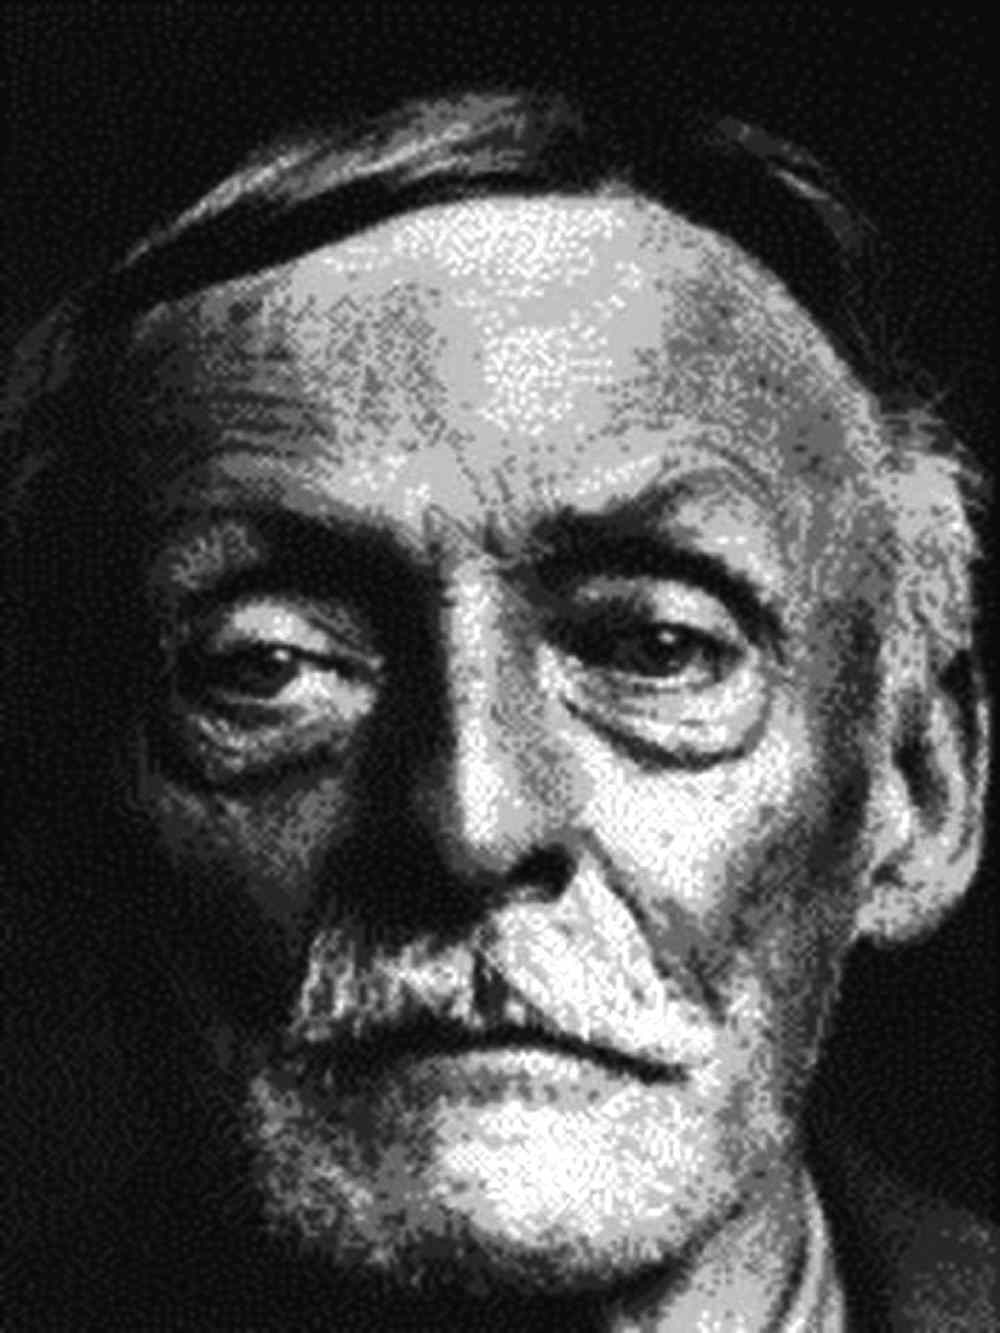 Also known as the gray man, the werewolf of wysteria, the boogey man and the moon maniac, Albert fish was an American serial killer.